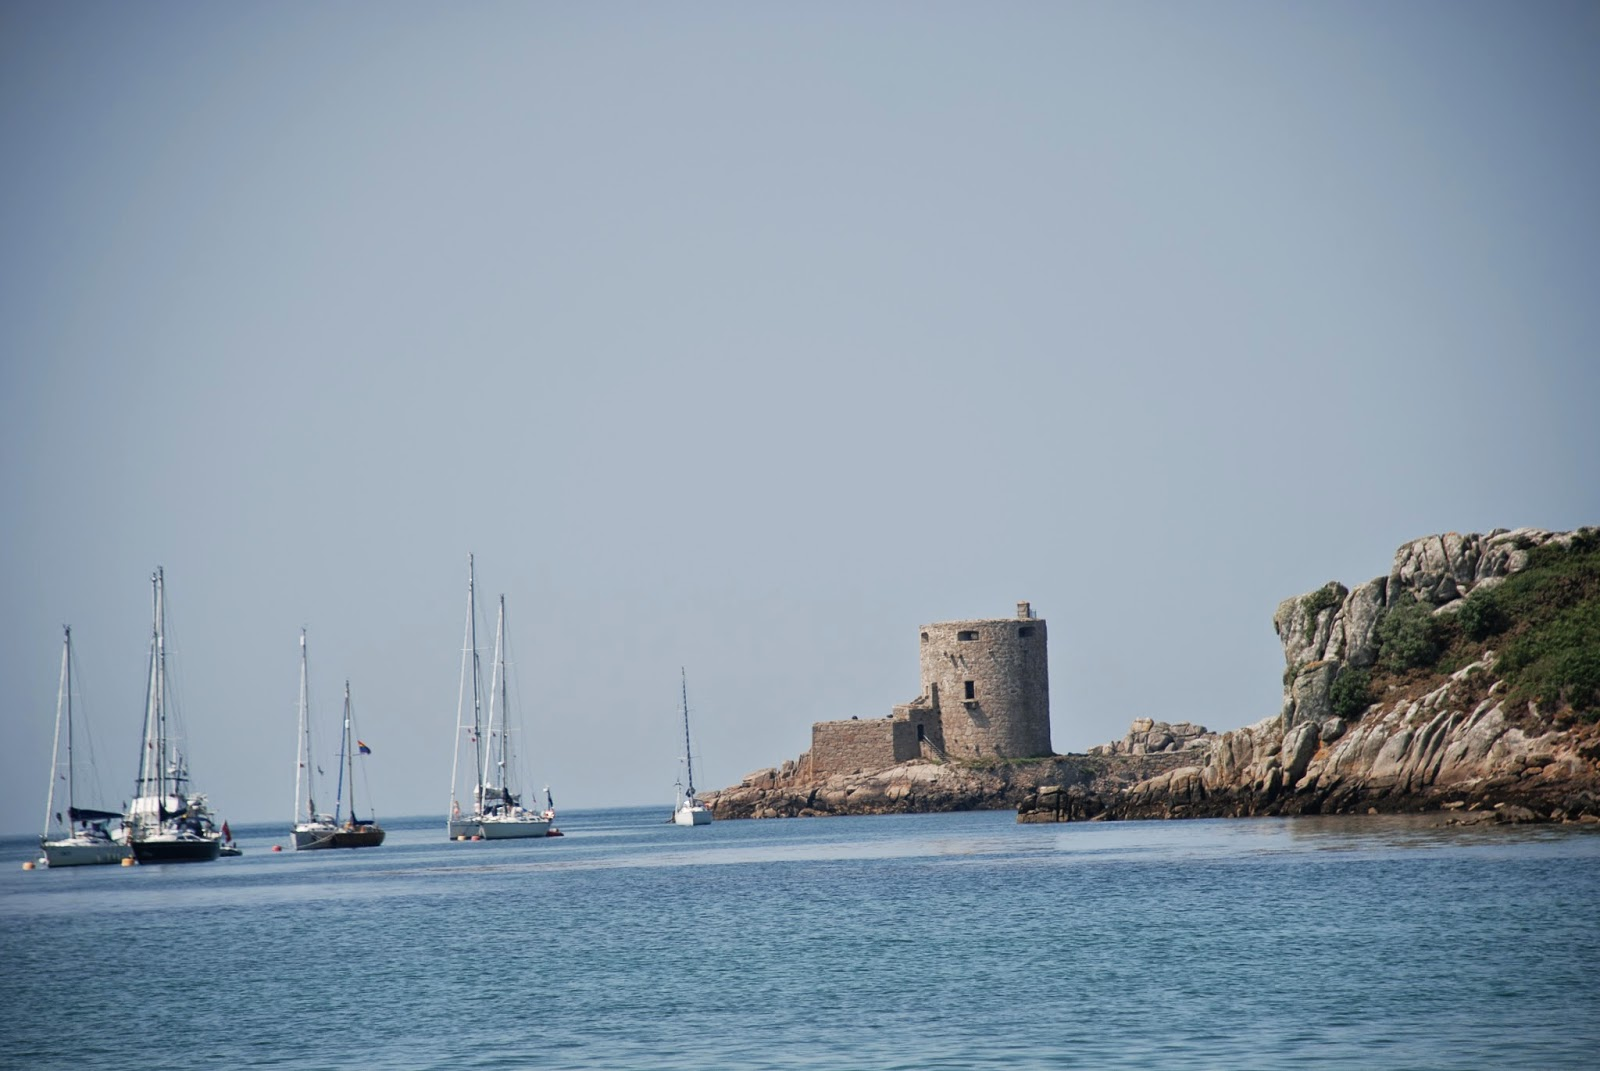 Cromwell's Castle, Tresco, Isles of Scilly